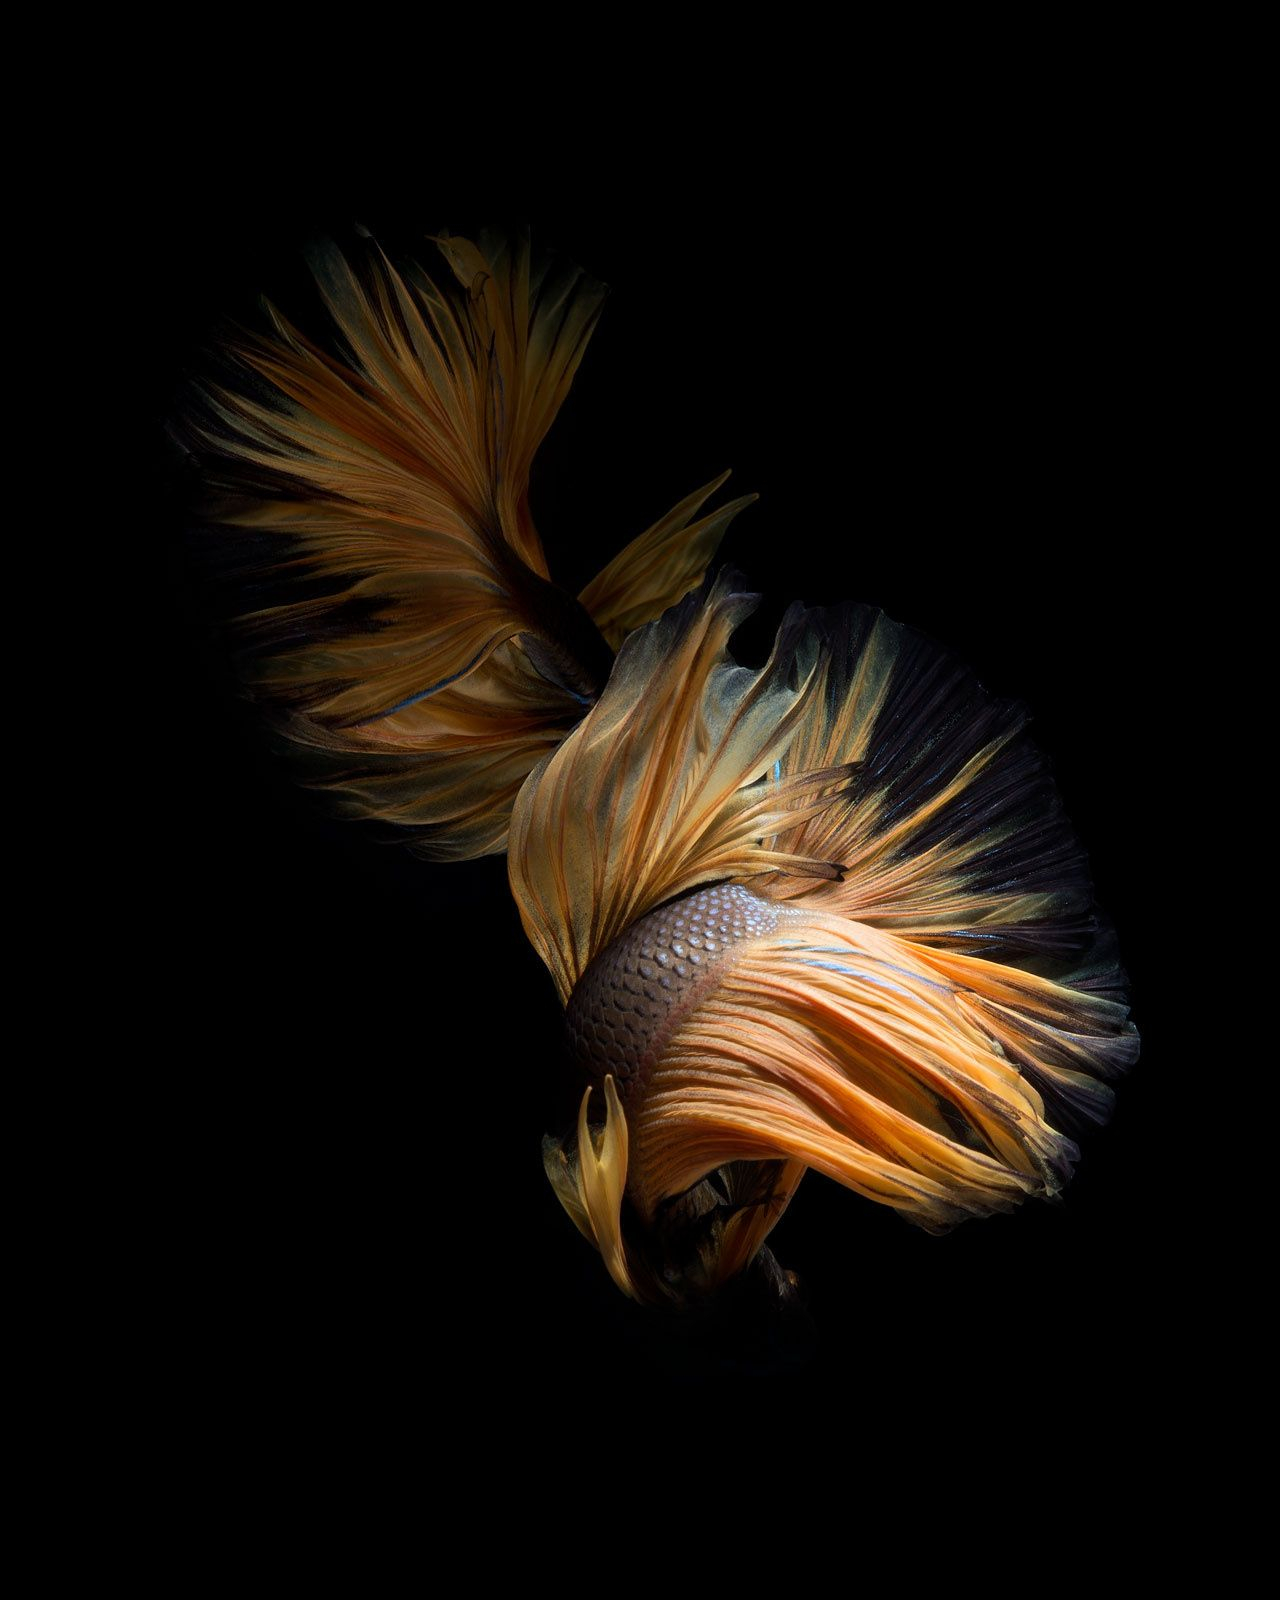 Wallpaper iphone cupang - Chiaroscuro Capture The Moving Moment Of Brown Yellow Siamese Fighting Fish Isolated On Black